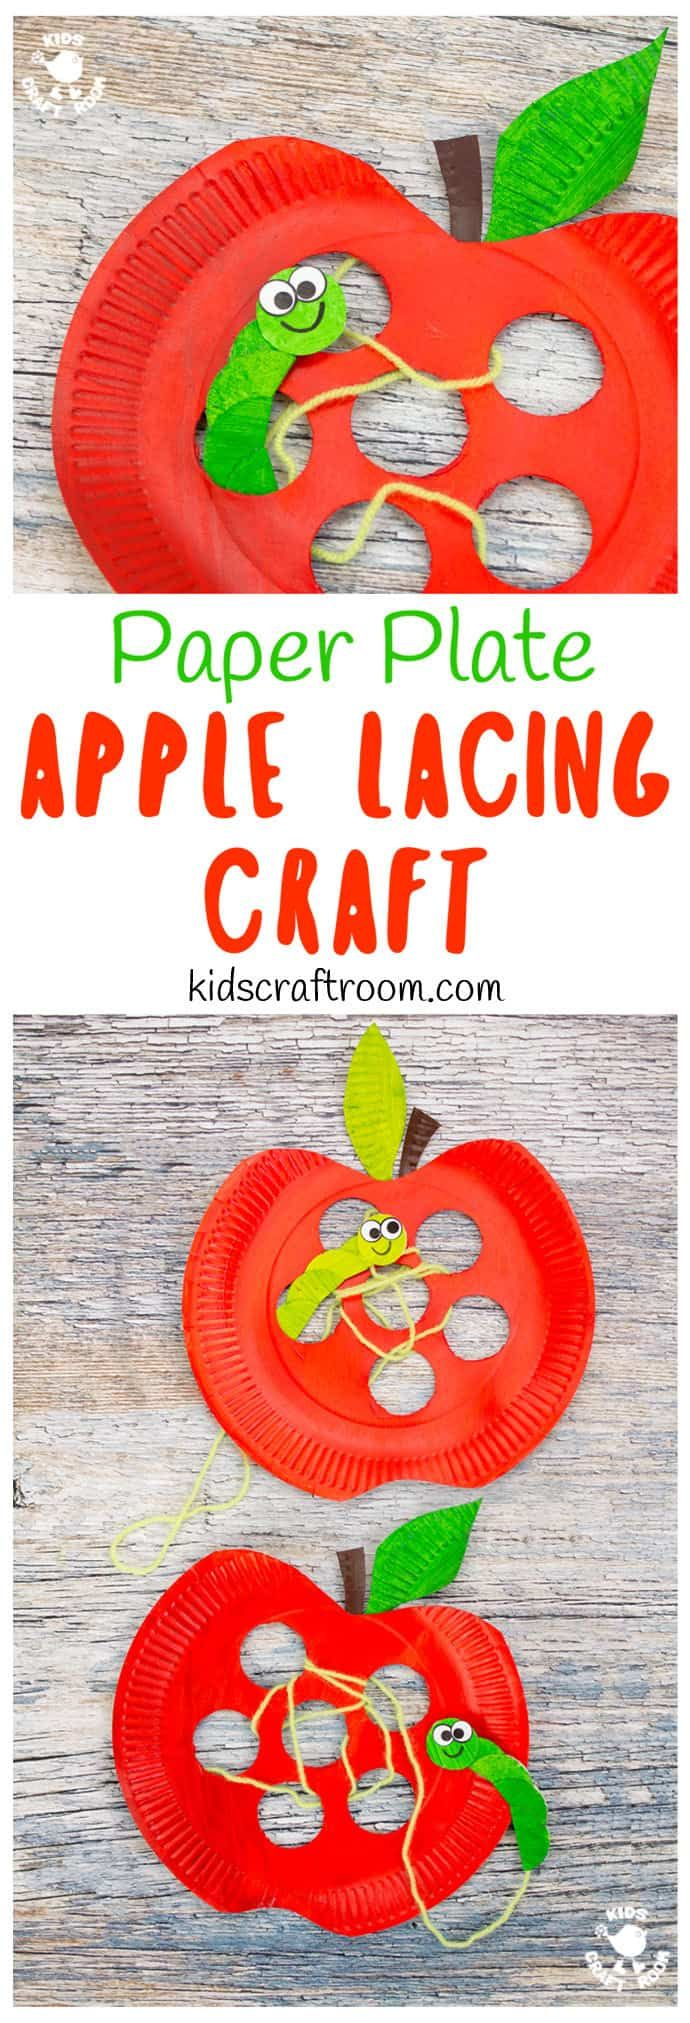 Paper Plate Apple Lacing Craft #fall